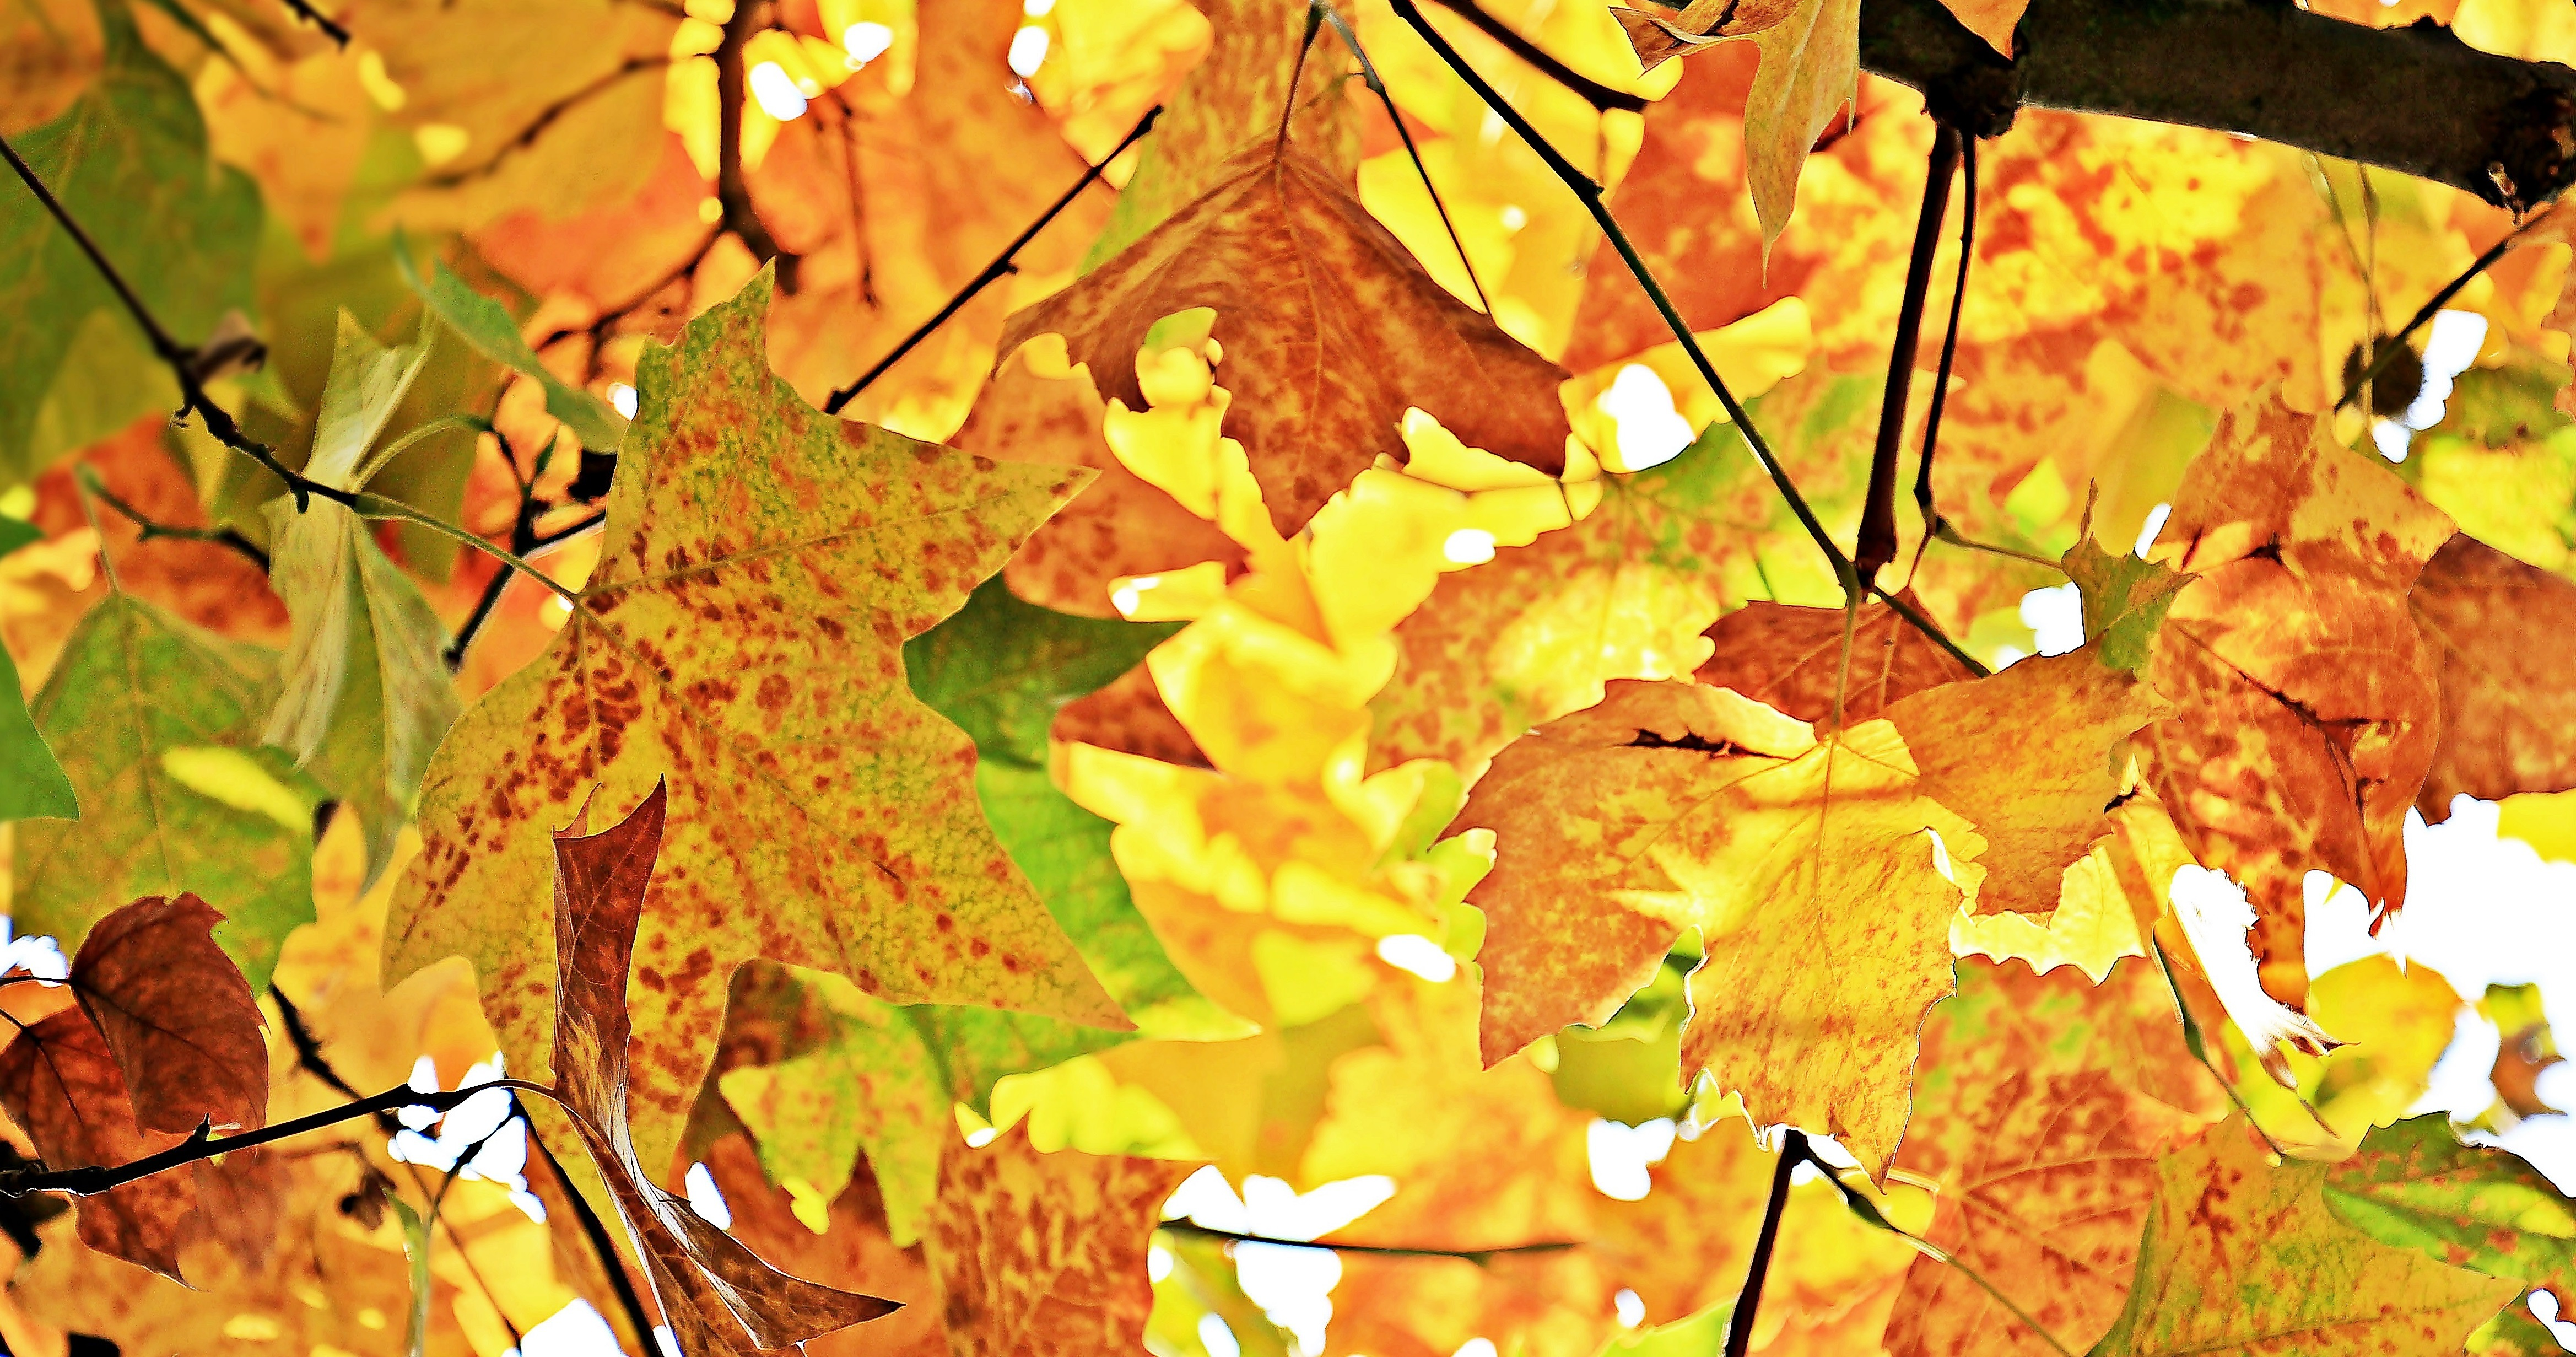 120943 download wallpaper Nature, Autumn, Foliage, Branches, Wood, Tree, Maple screensavers and pictures for free